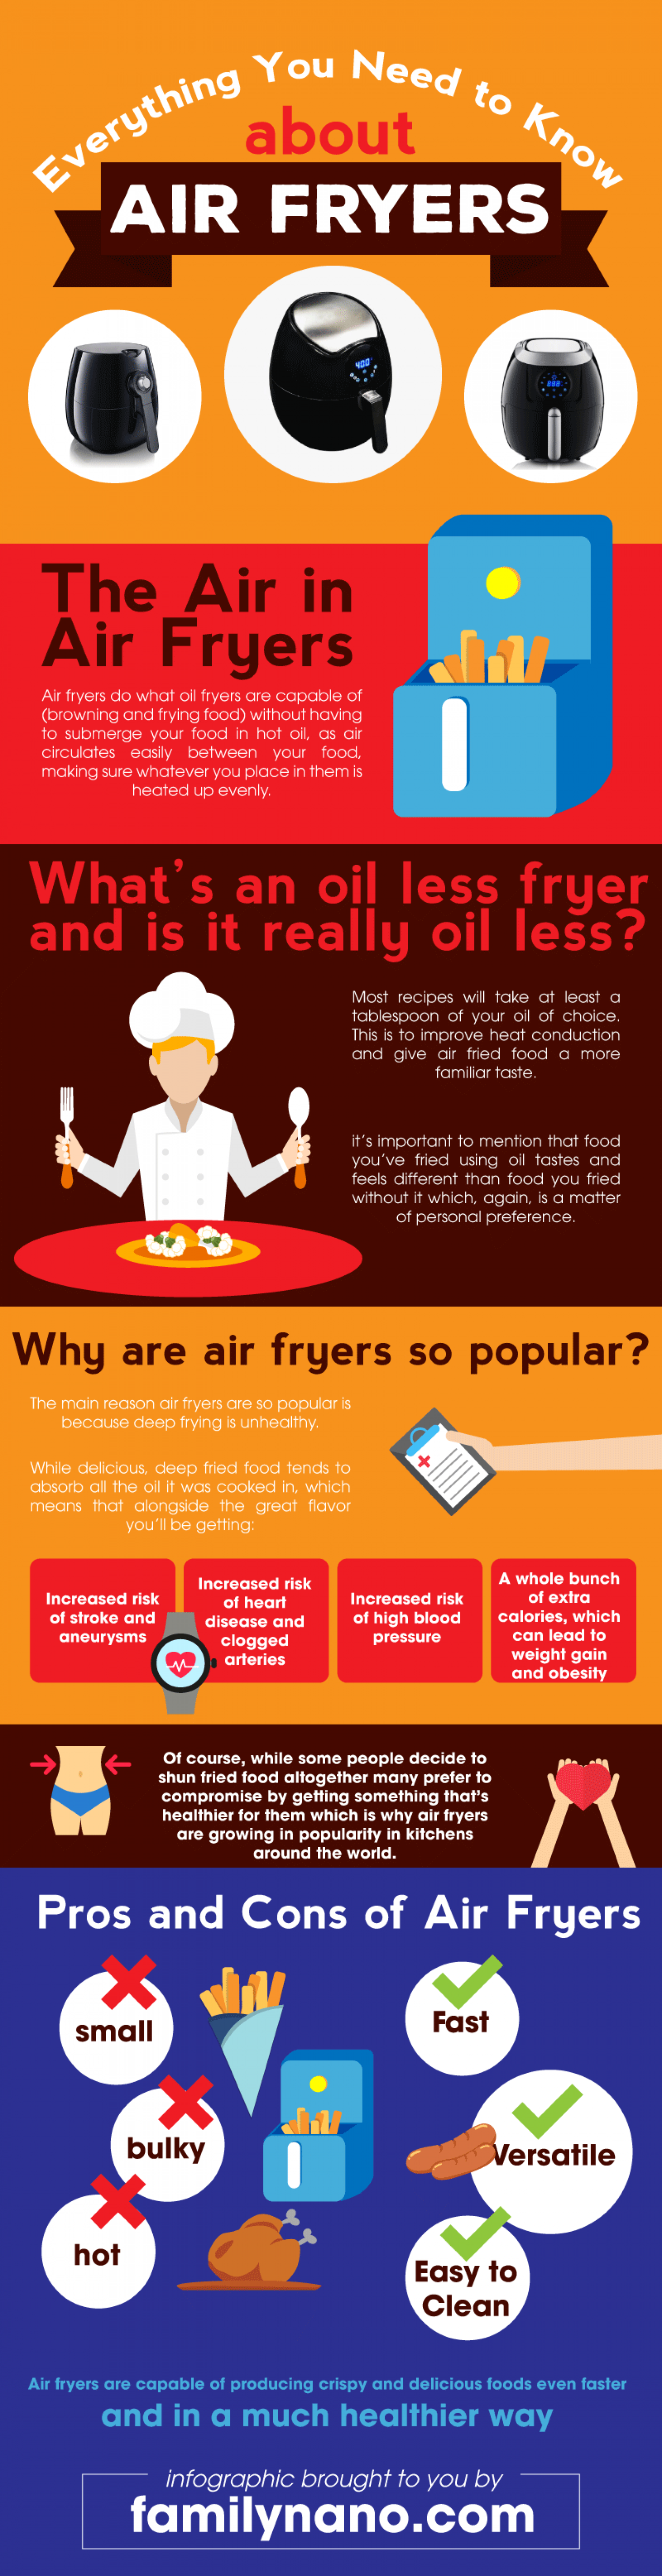 Air Fryer Infographic  - Everything You Need to Know About Air Fryers Infographic